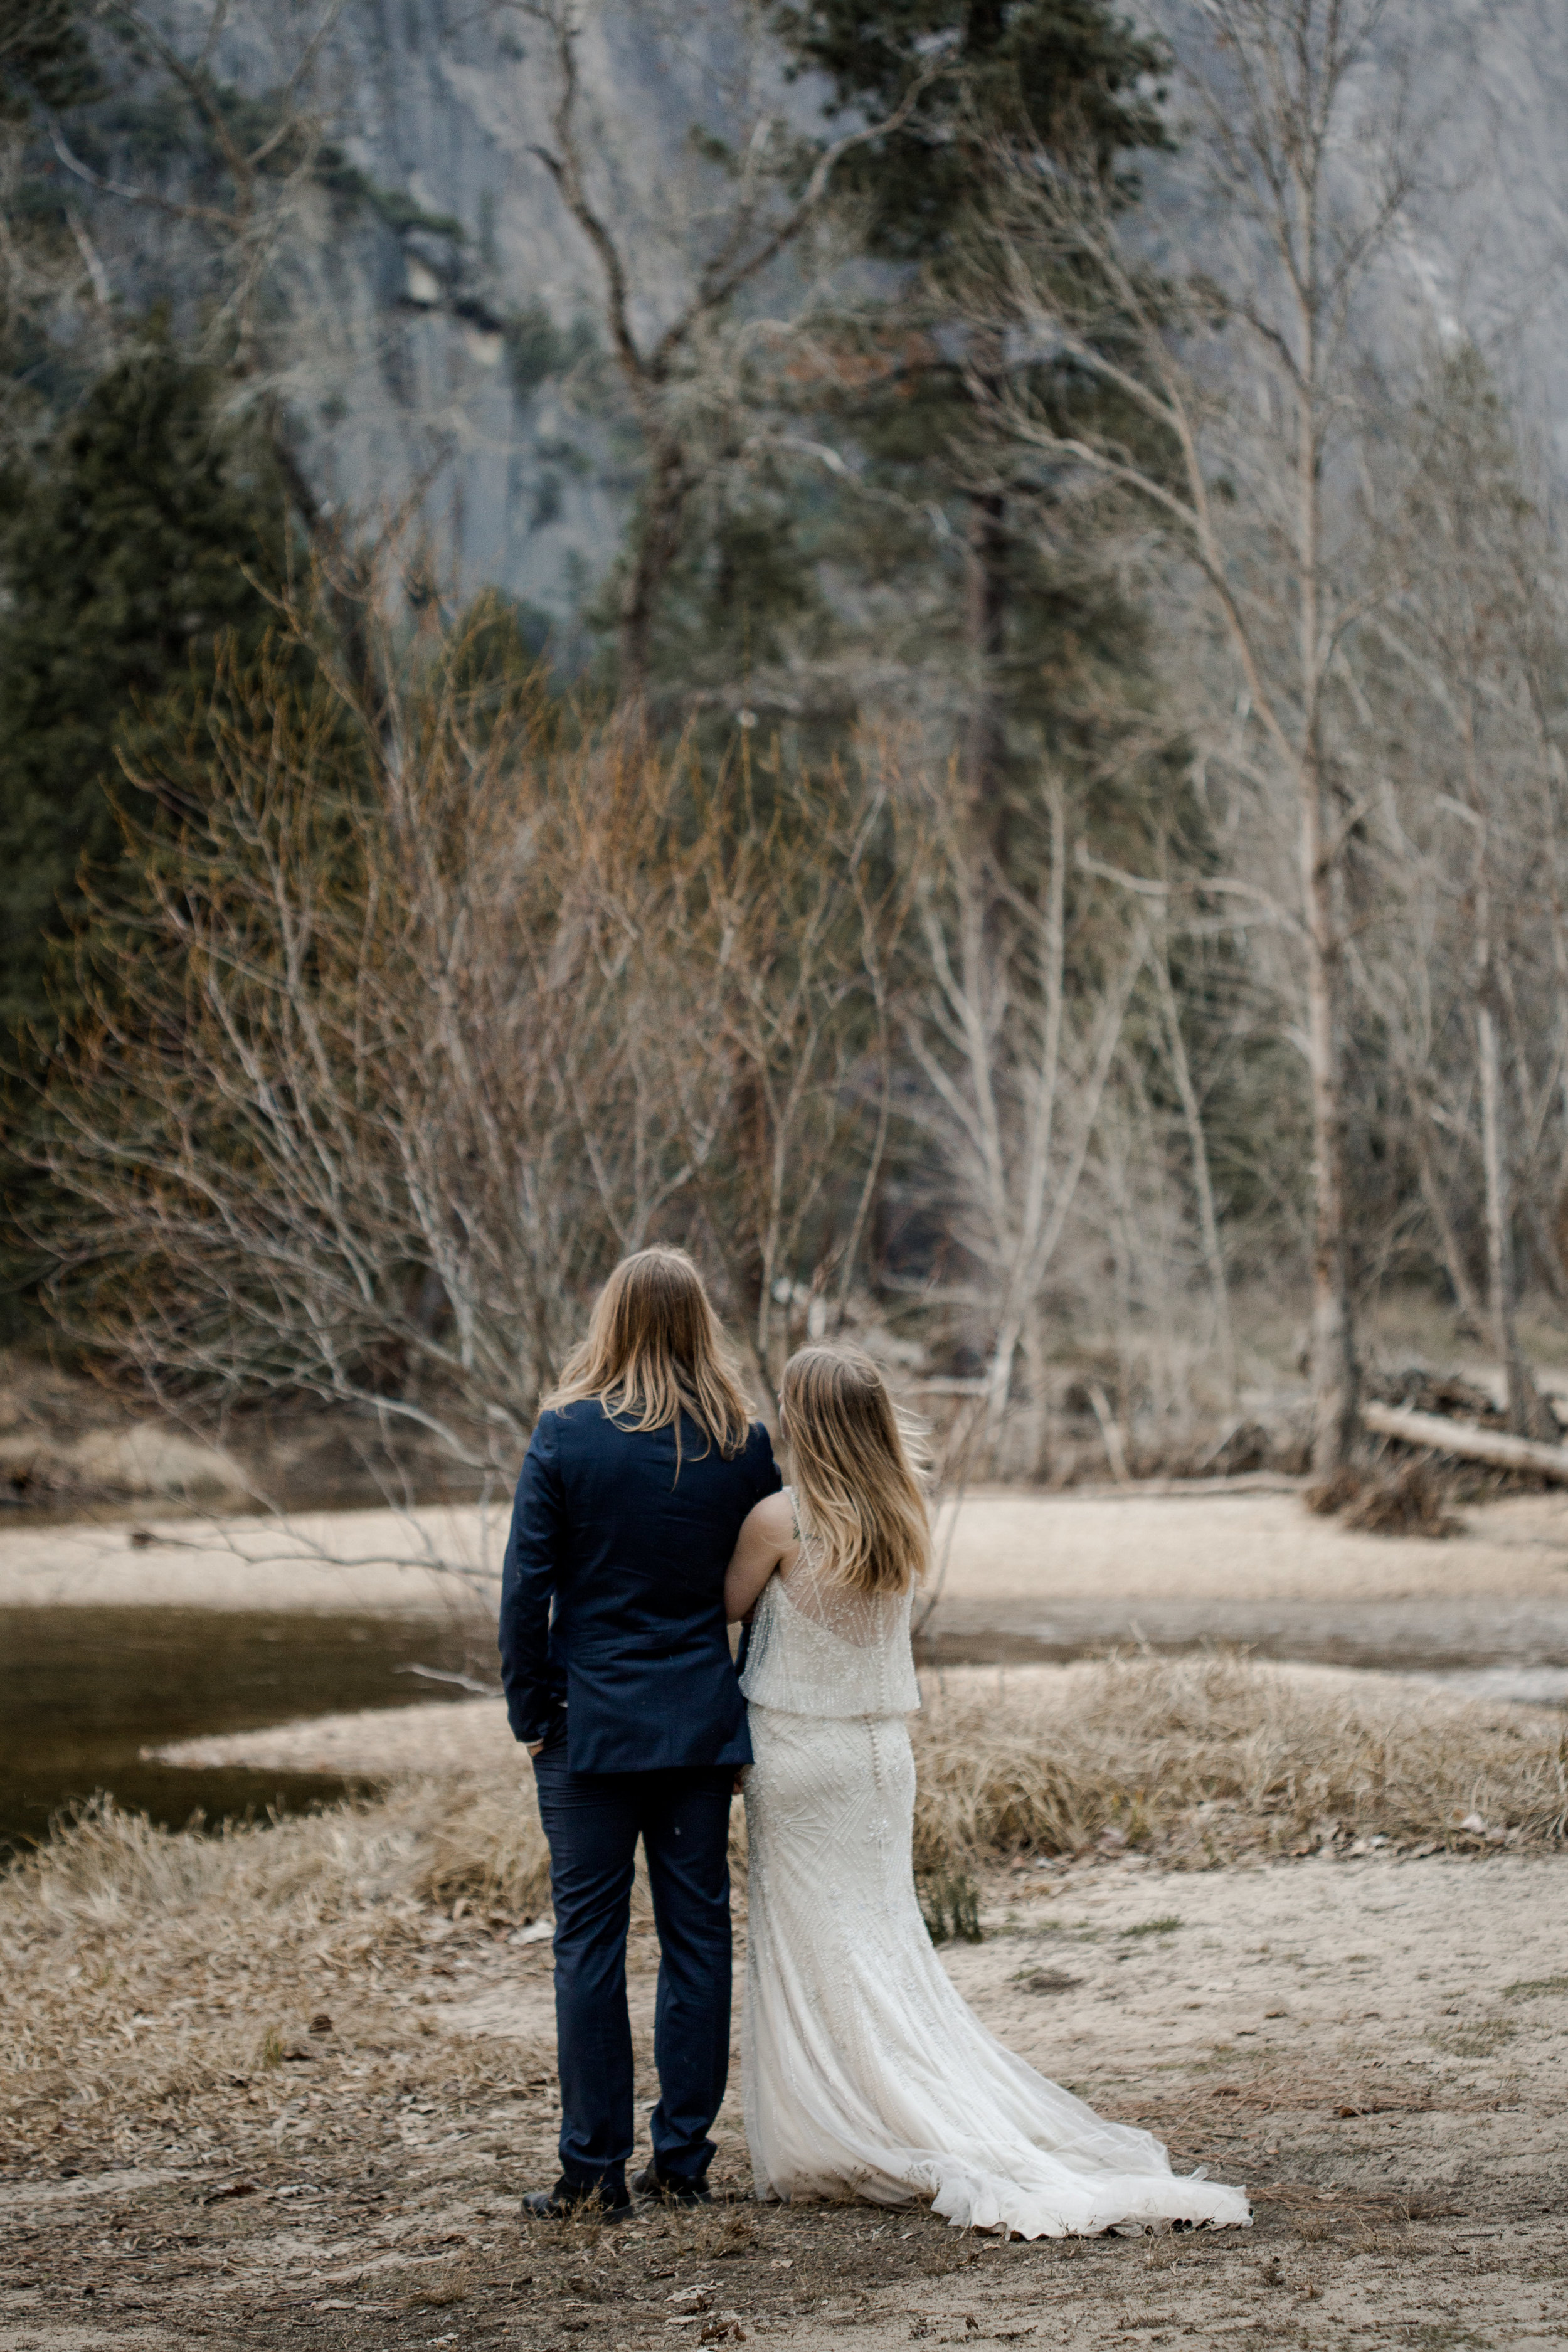 nicole-daacke-photography-yousemite-national-park-elopement-photographer-winter-cloud-moody-elope-inspiration-yosemite-valley-tunnel-view-winter-cloud-fog-weather-wedding-photos-30.jpg